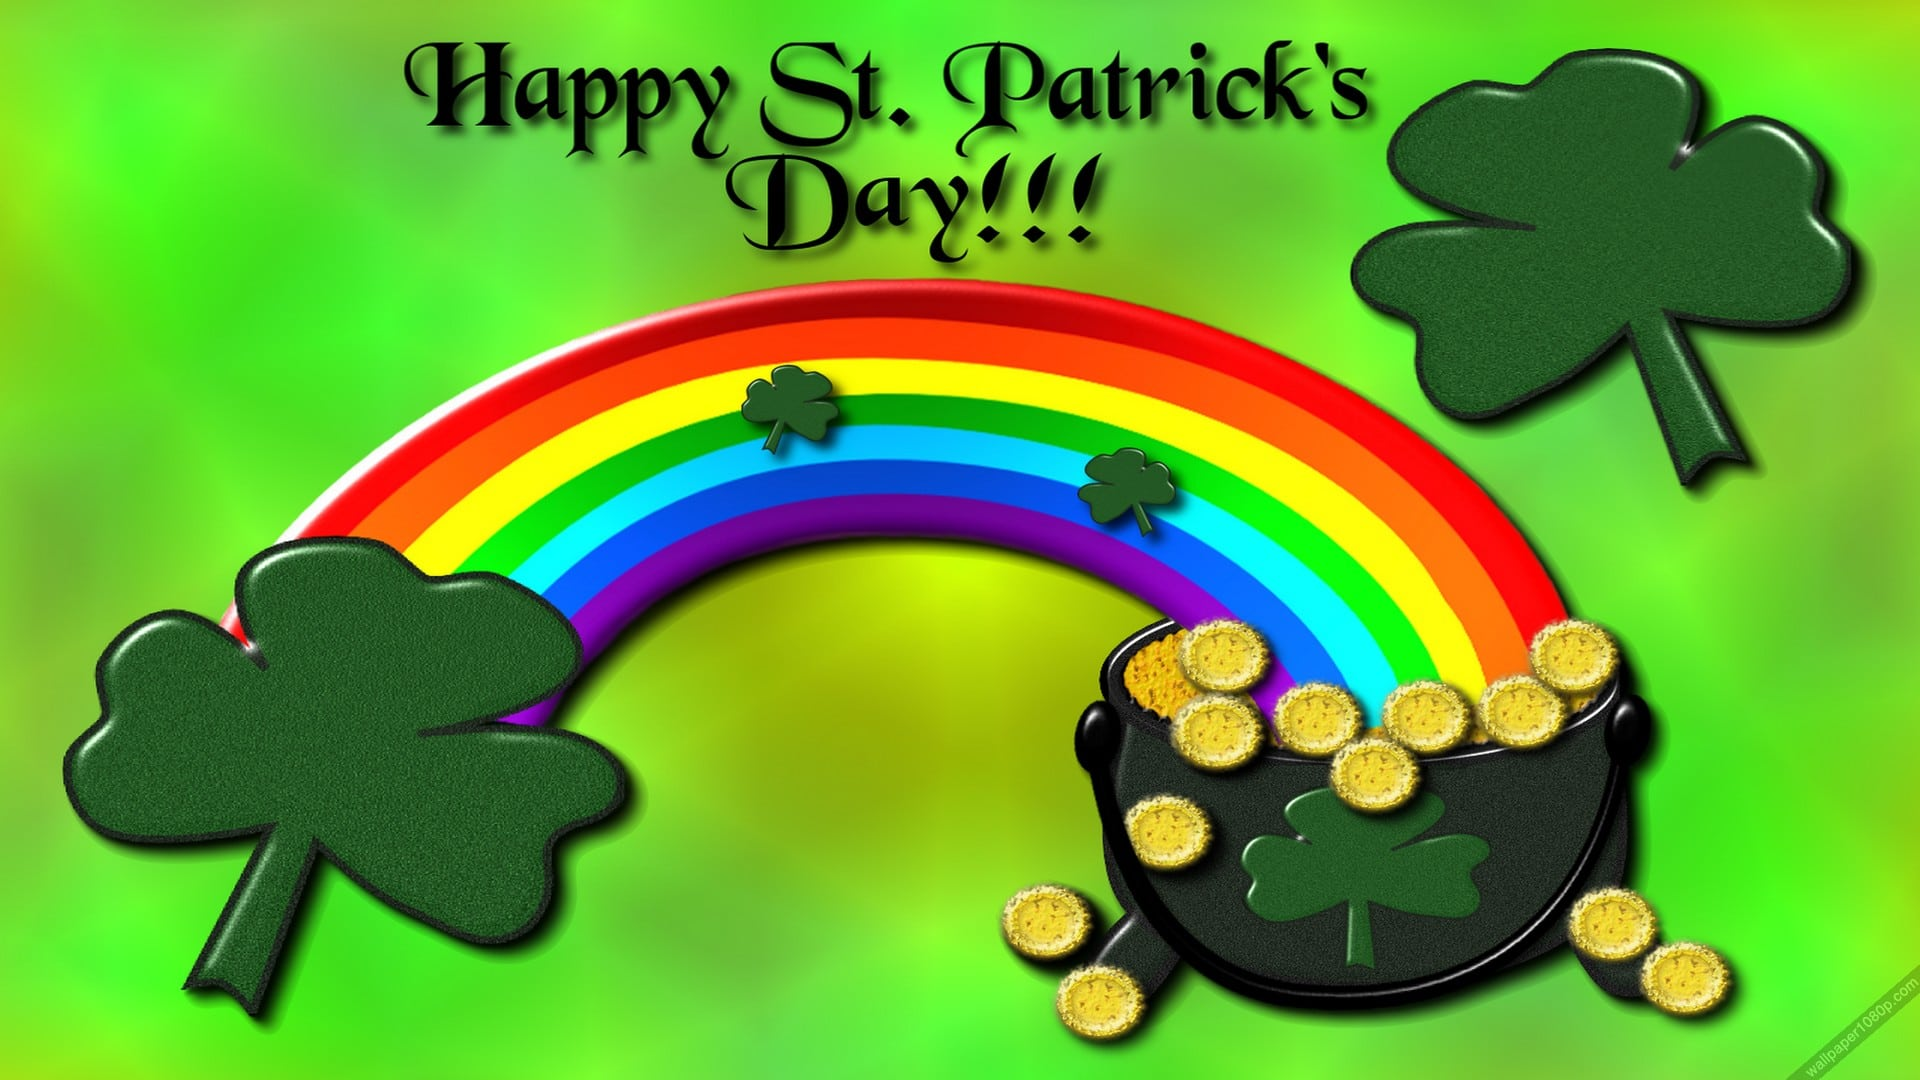 images of Patrick's Day